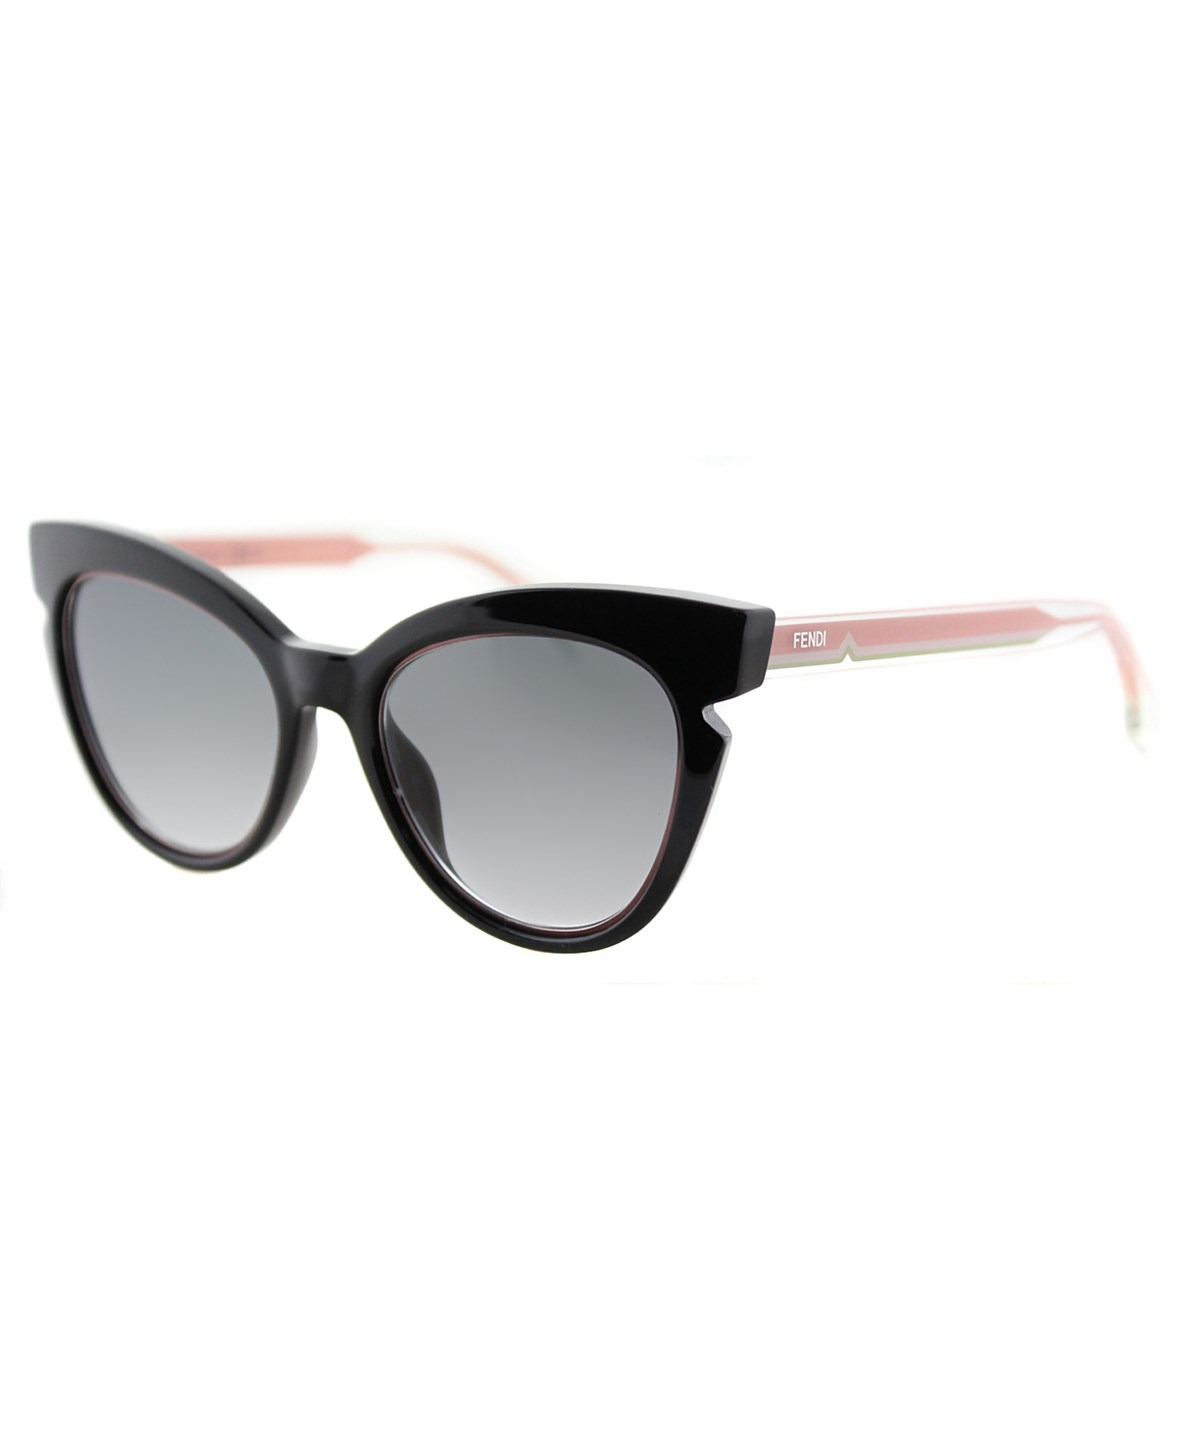 Fendi Lines Cat-eye Plastic Sunglasses In Black And Crystal Pink